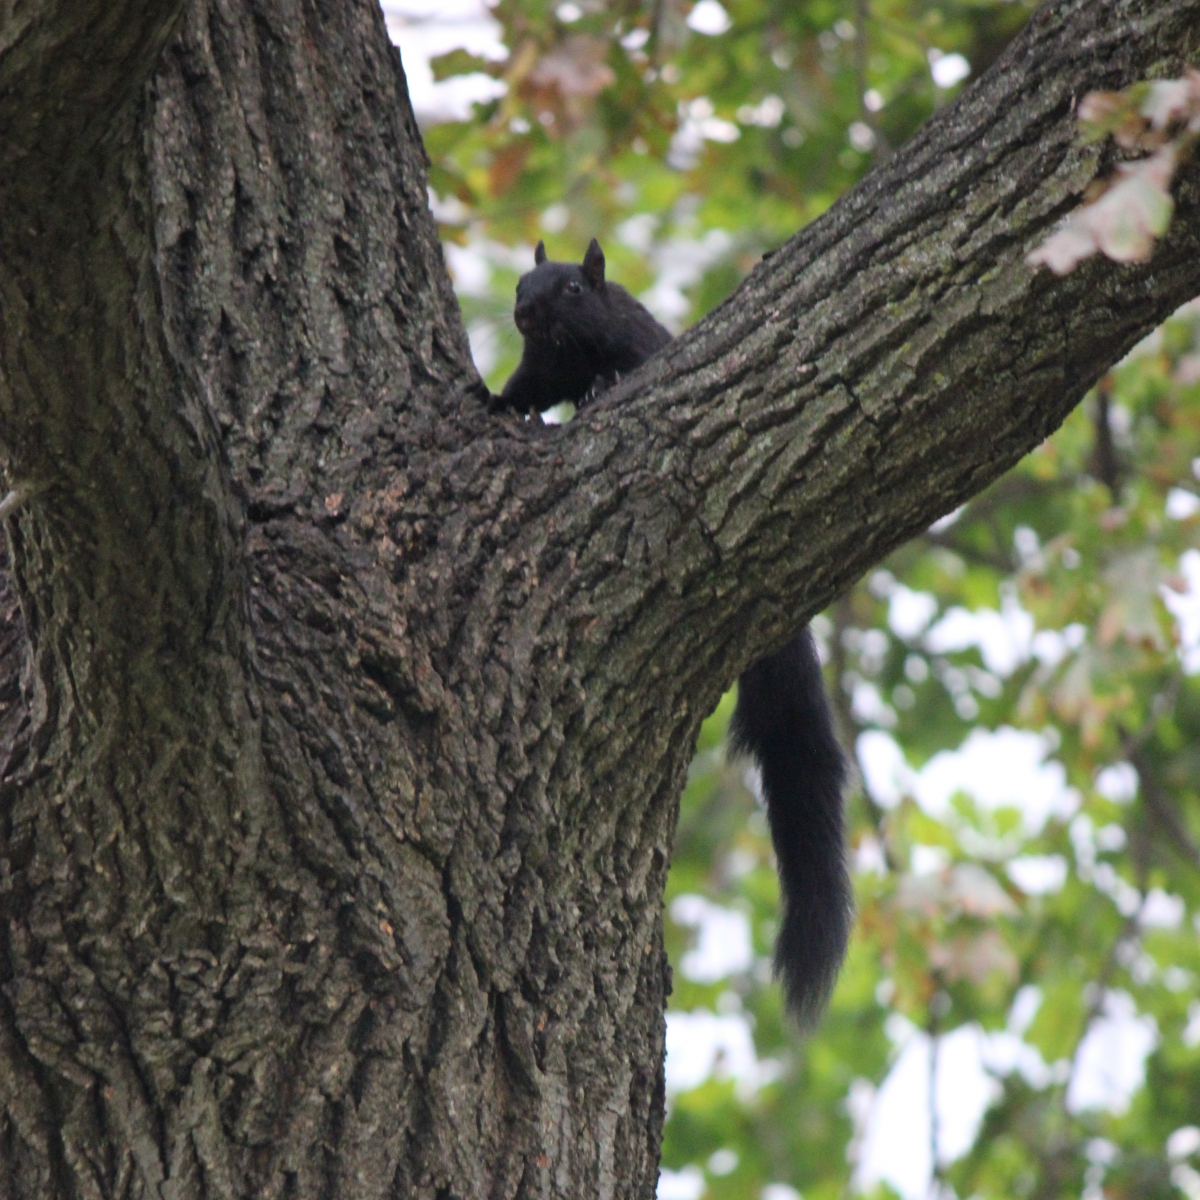 Black squirrel climbing a tree